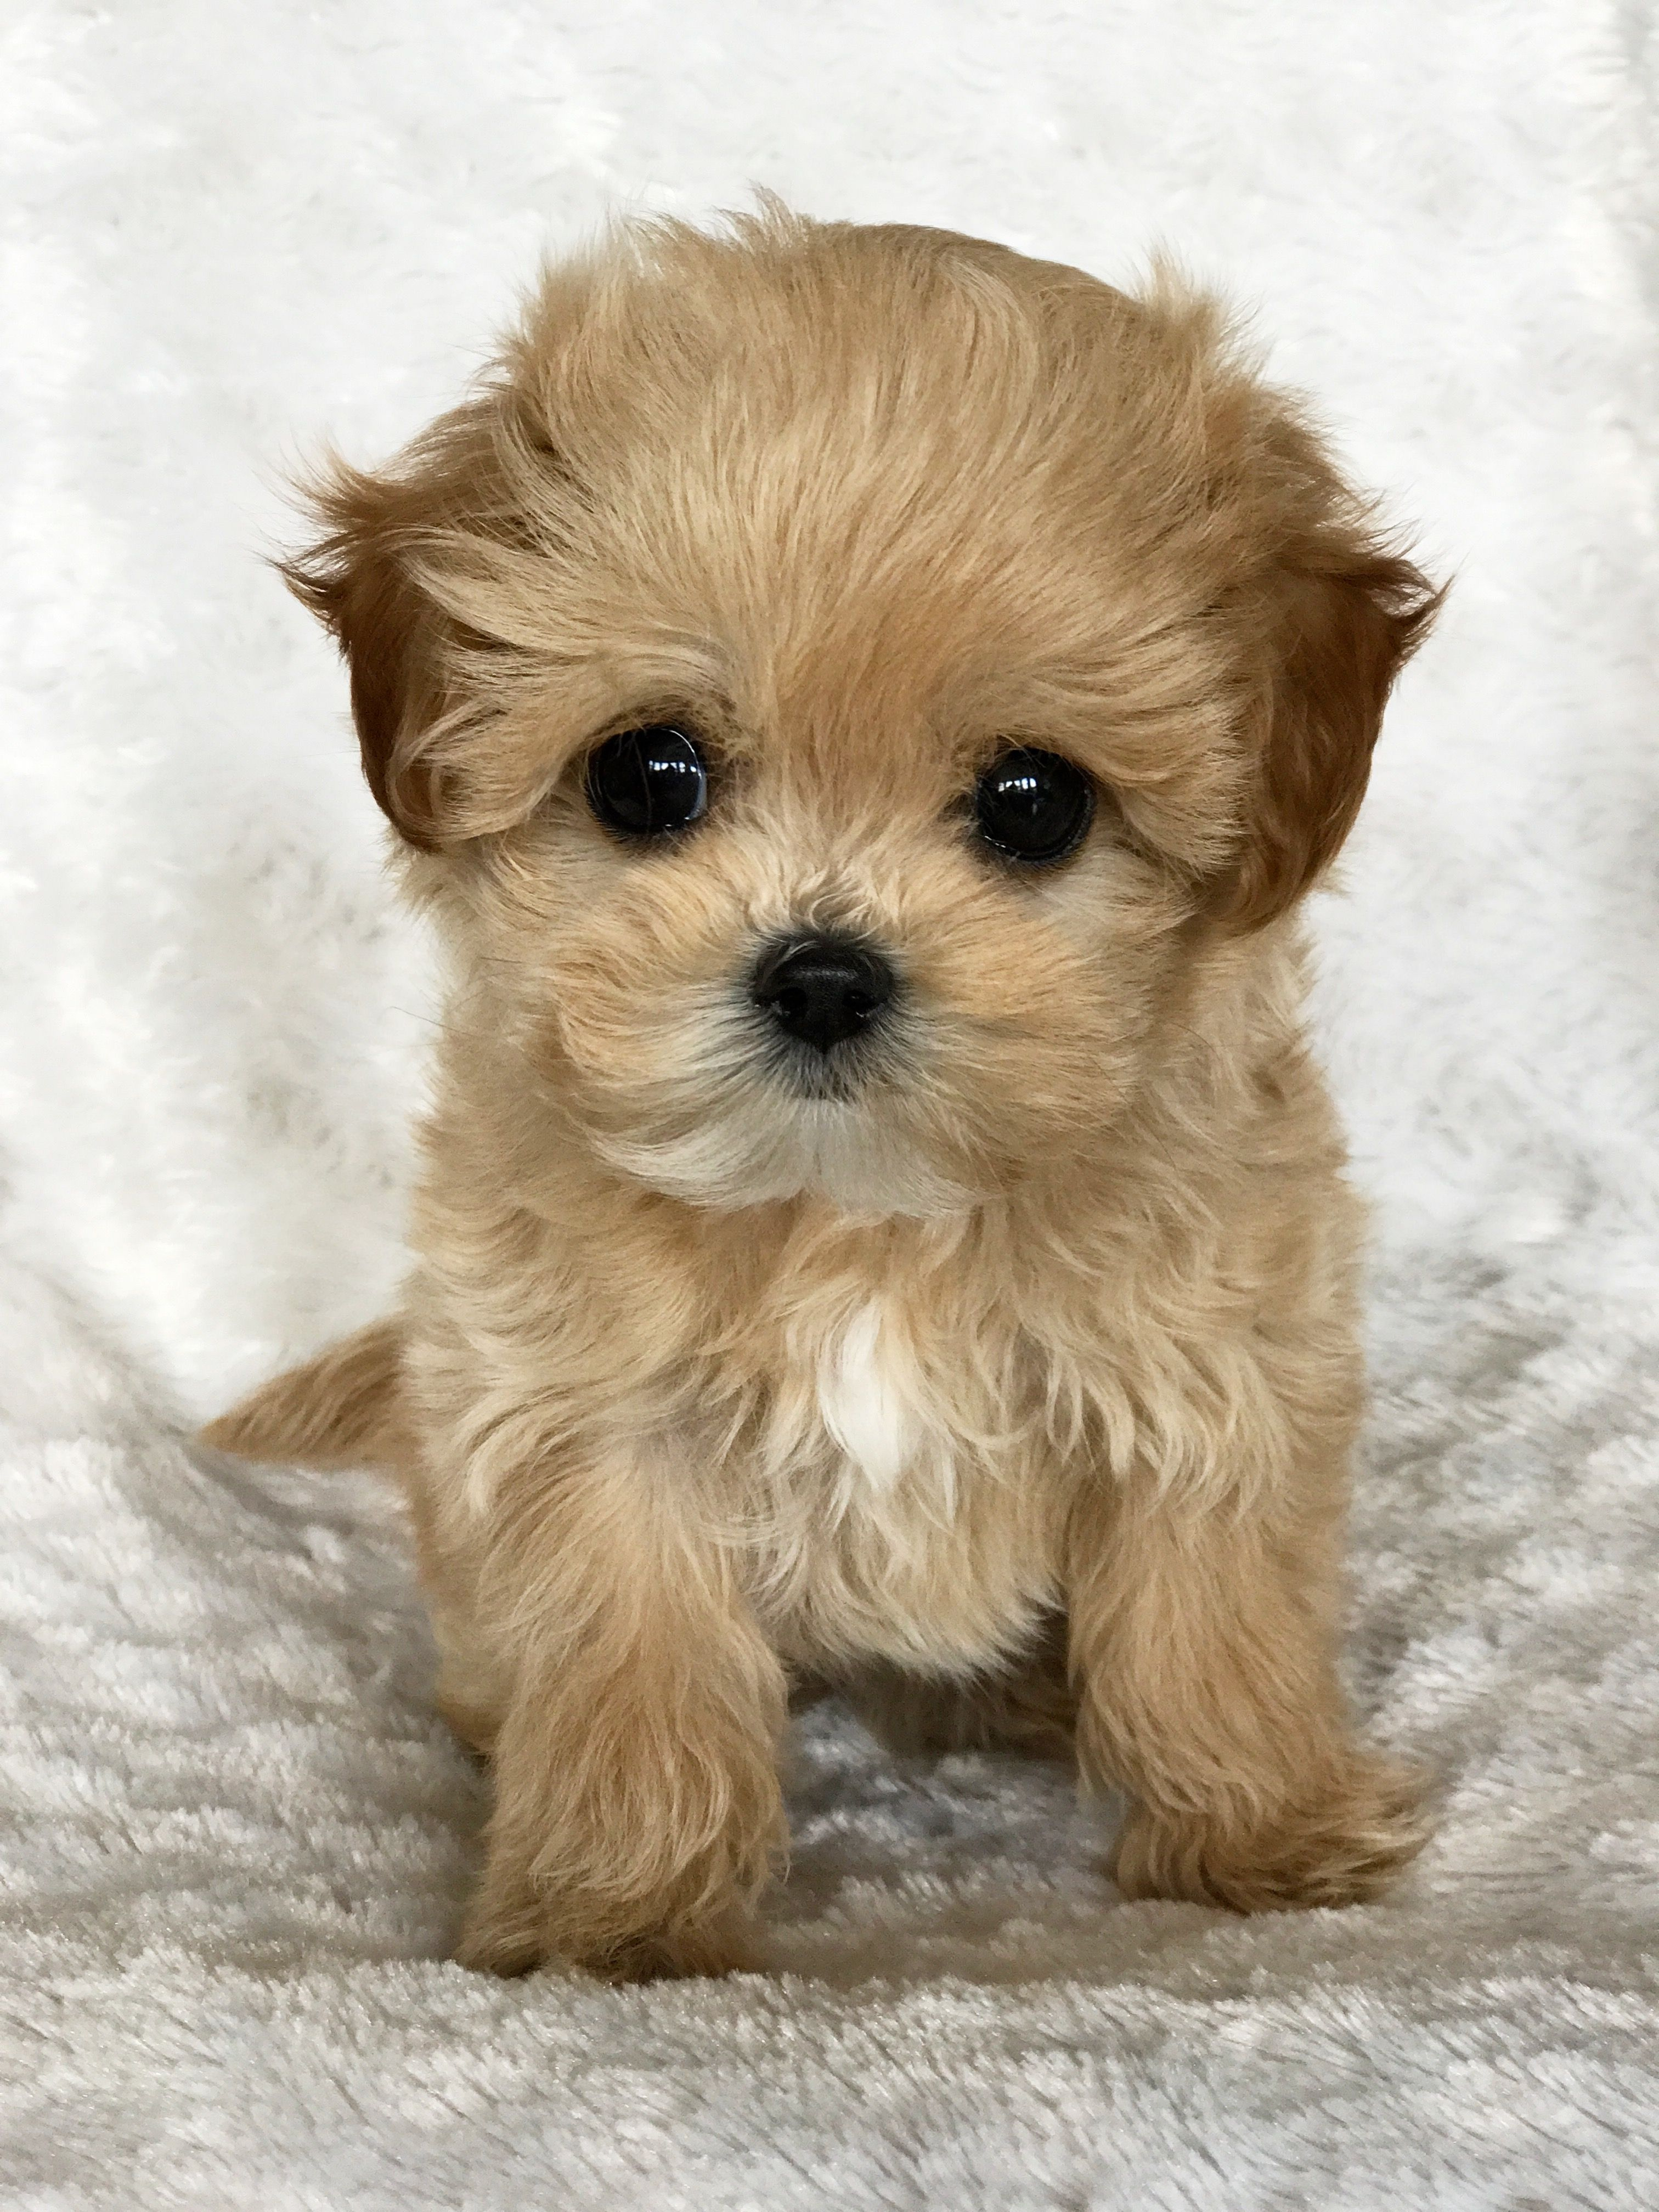 Pin by C. Graham on Cute baby animals Pomeranian puppy